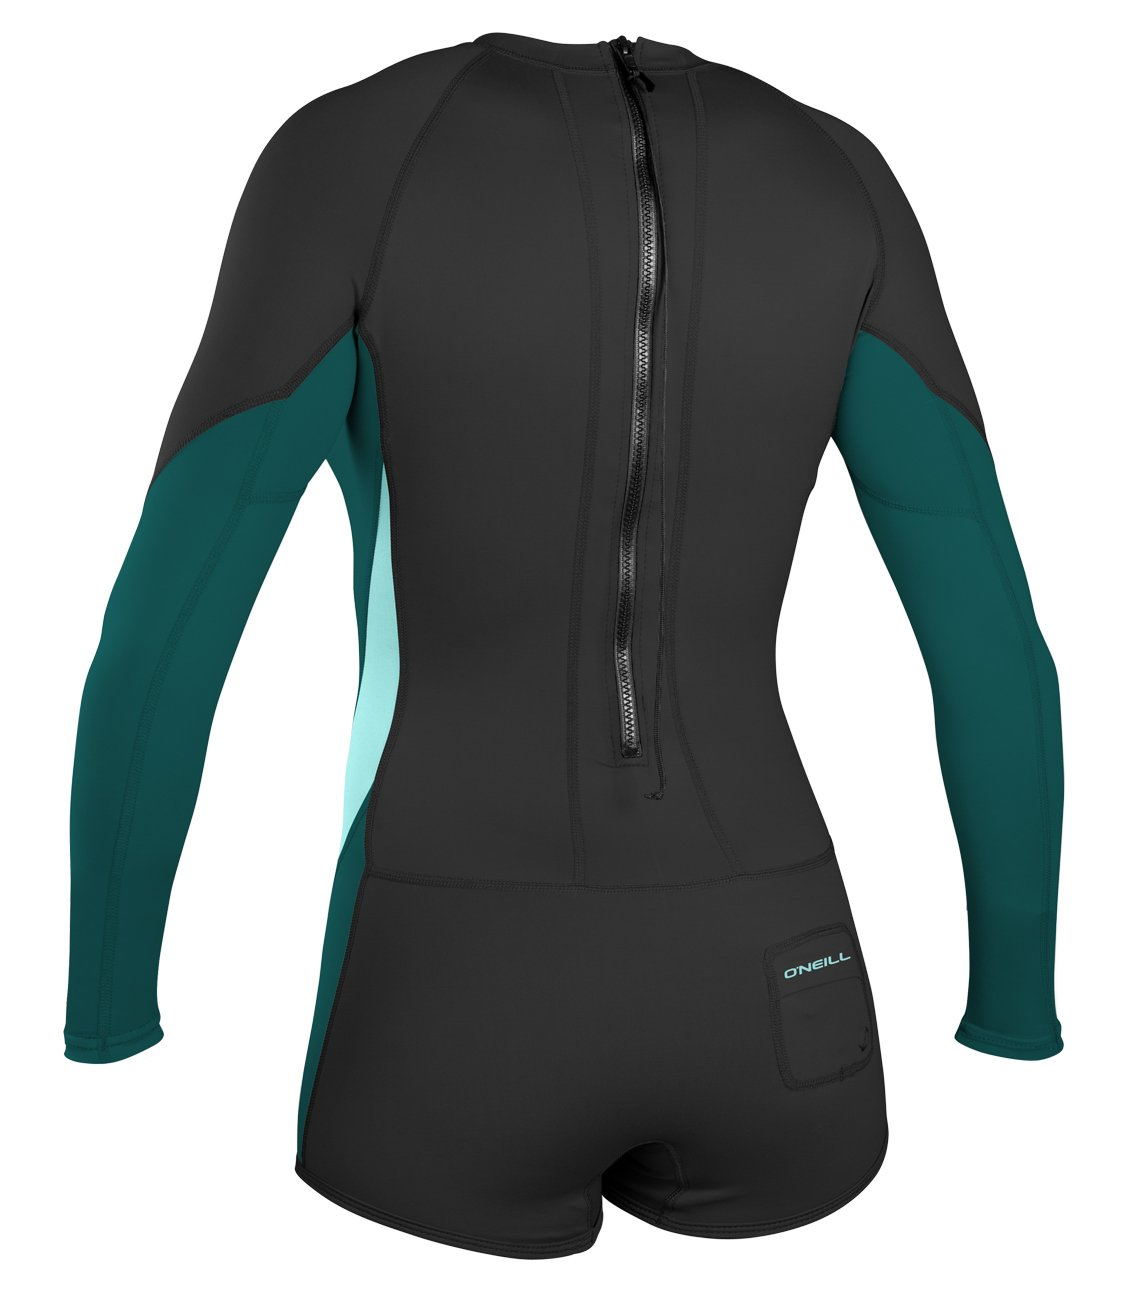 78730138f1 Amazon.com   O Neill Wetsuits Womens Skins Long Sleeve Surf Suit   Sports    Outdoors